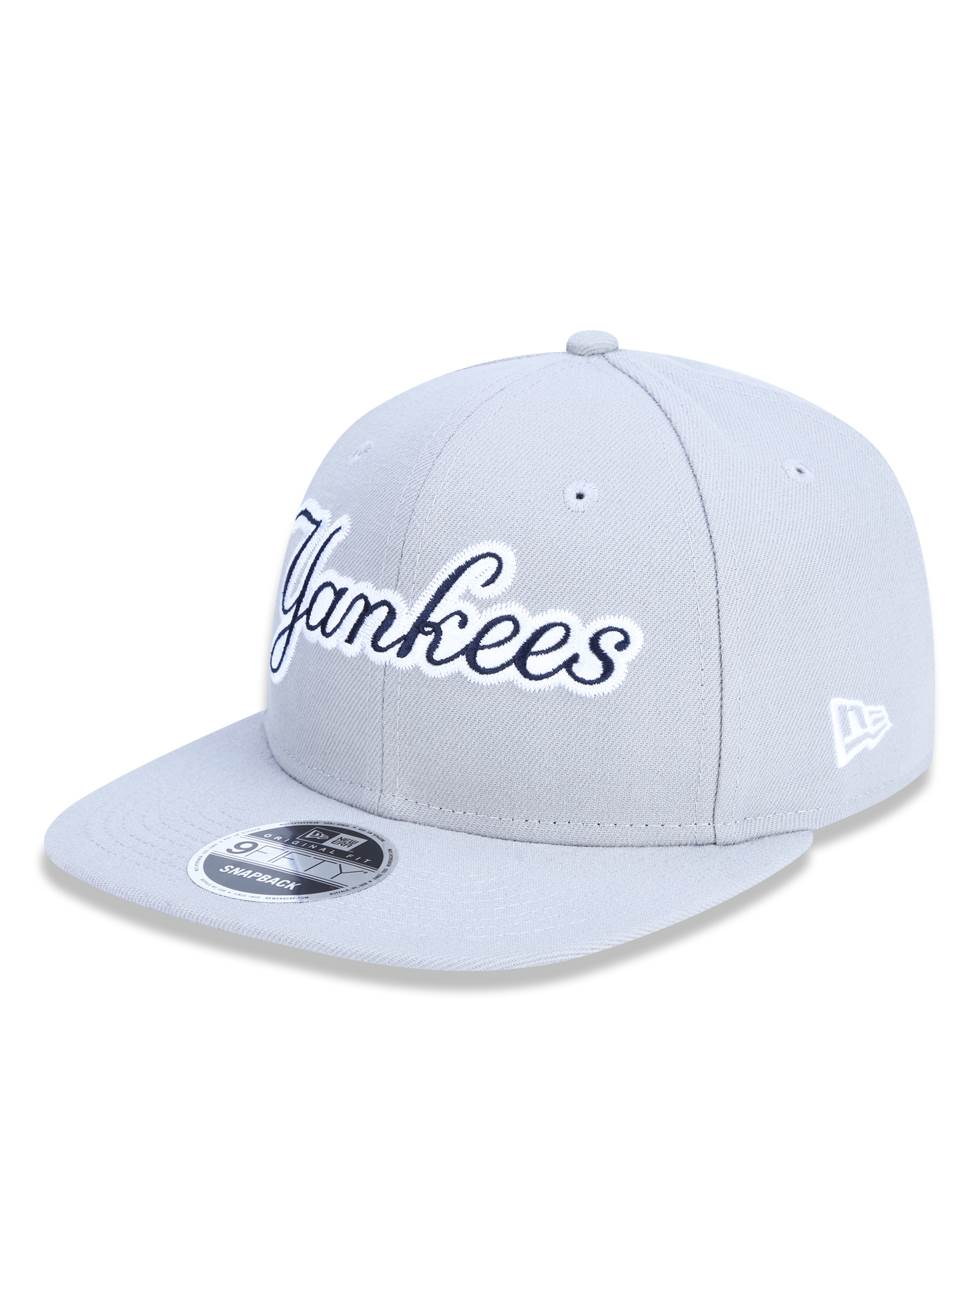 Boné New Era 9fifty Mlb New York Yankees Cinza